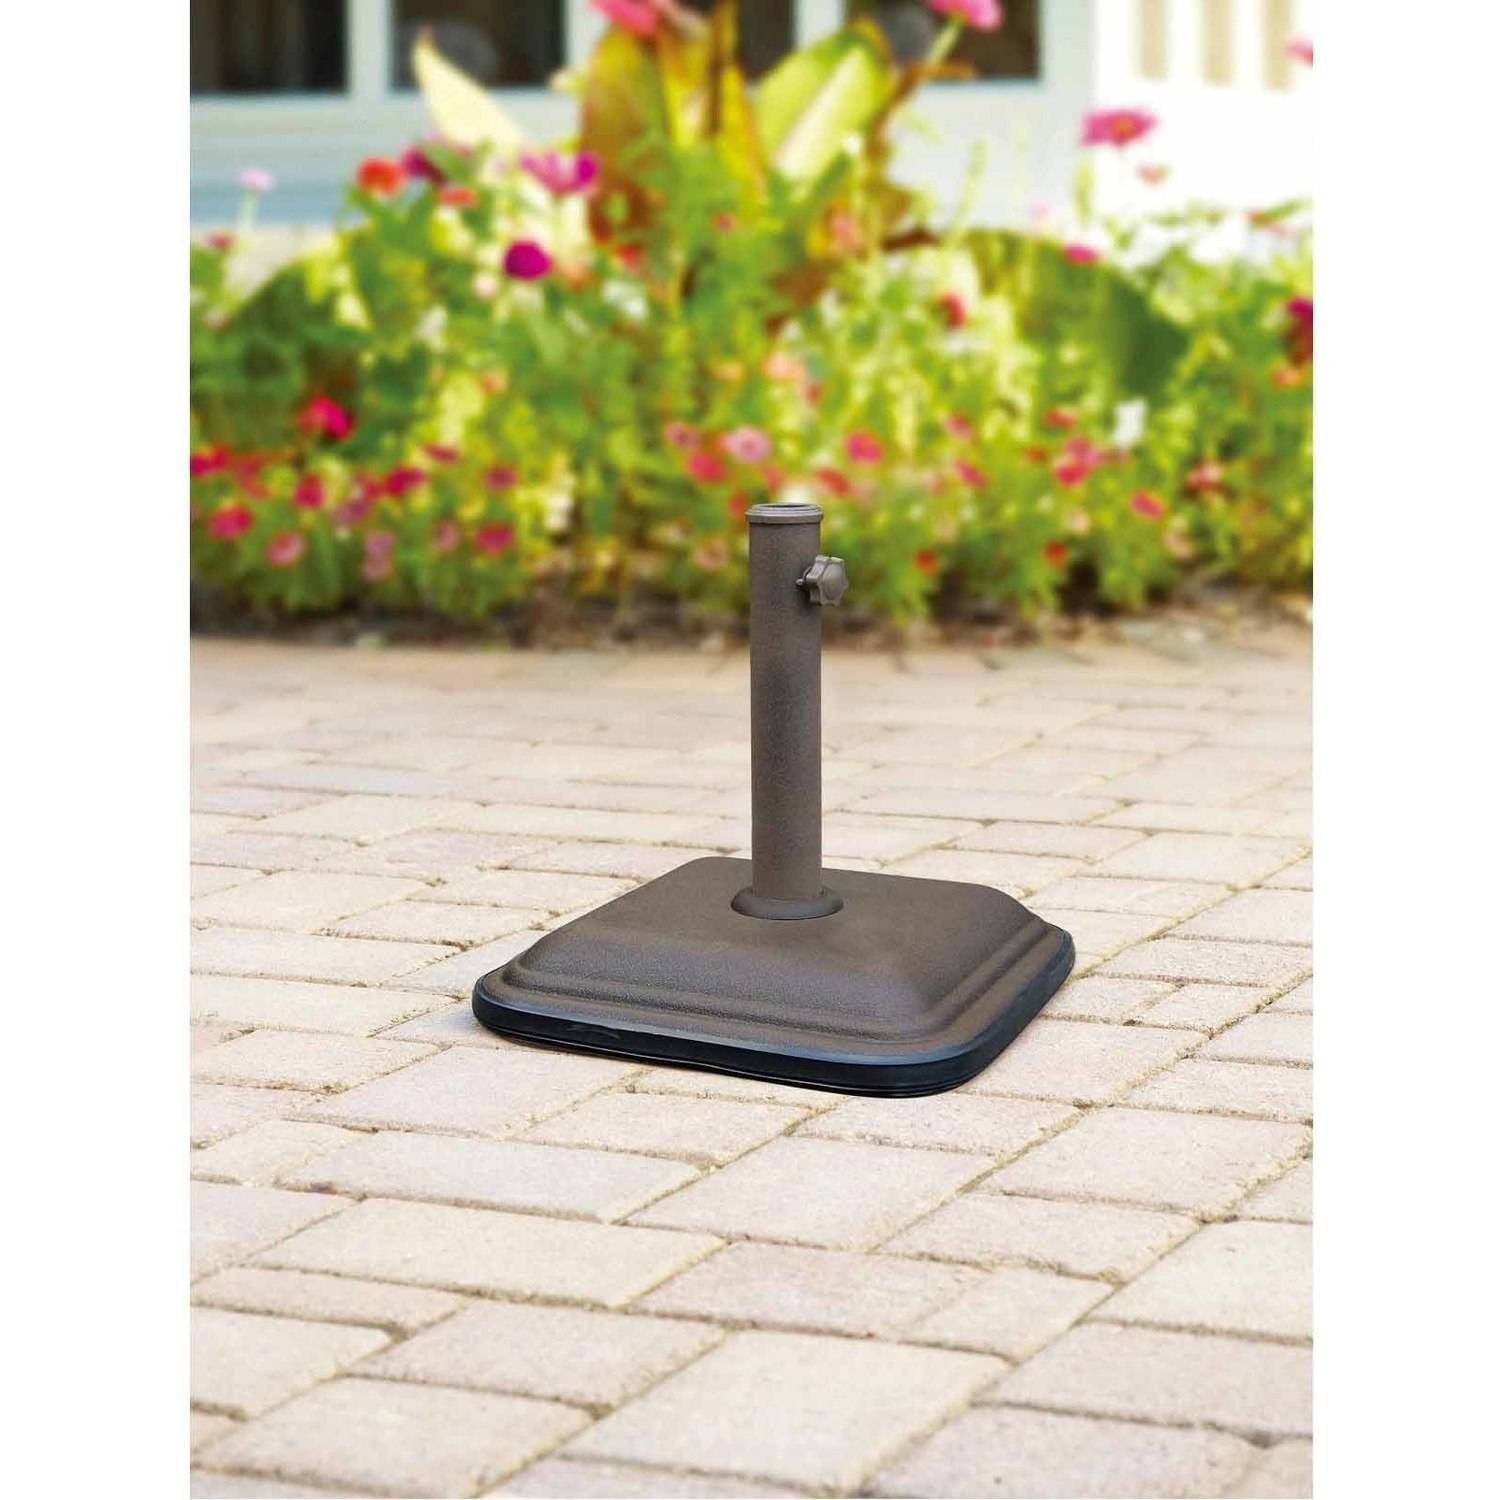 mainstays lawson ridge umbrella base - Patio Umbrella Base